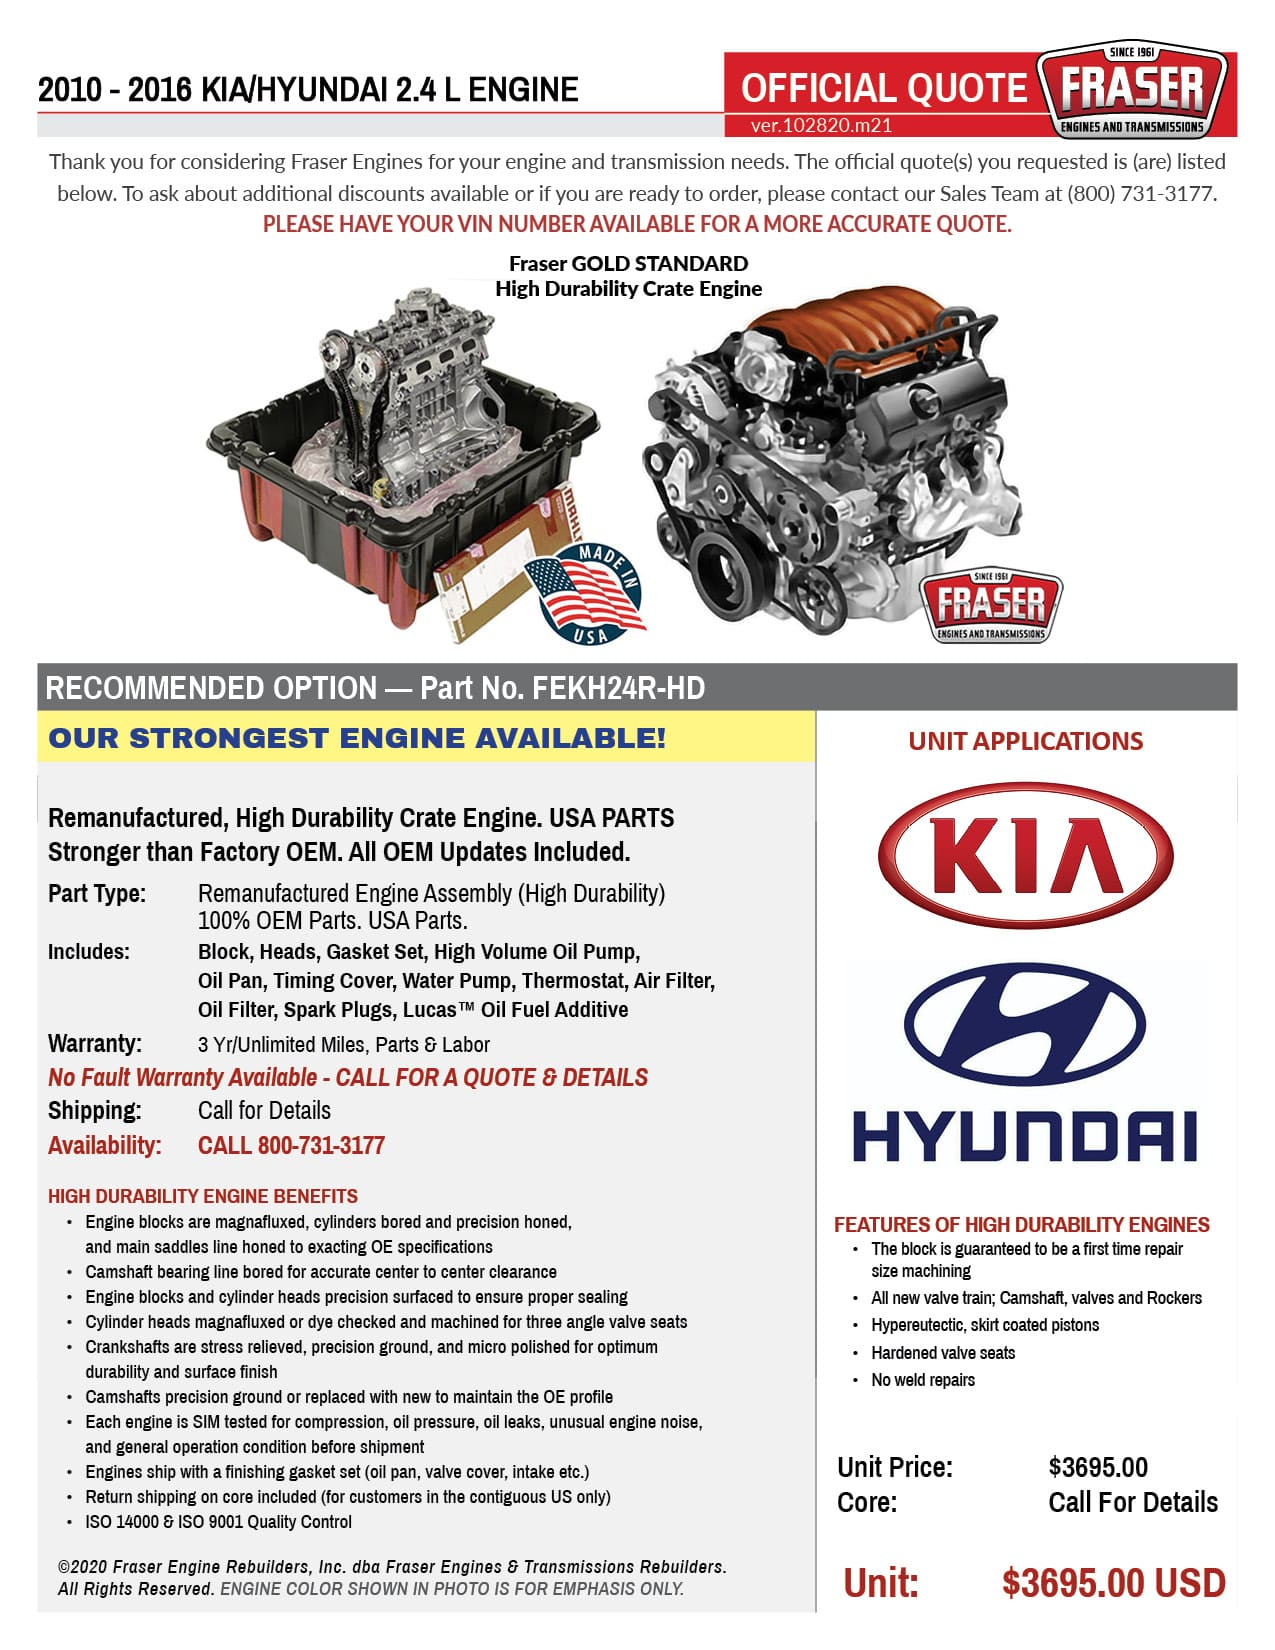 2010 - 2016 Kia Hyundai 2.4 Liter Engines